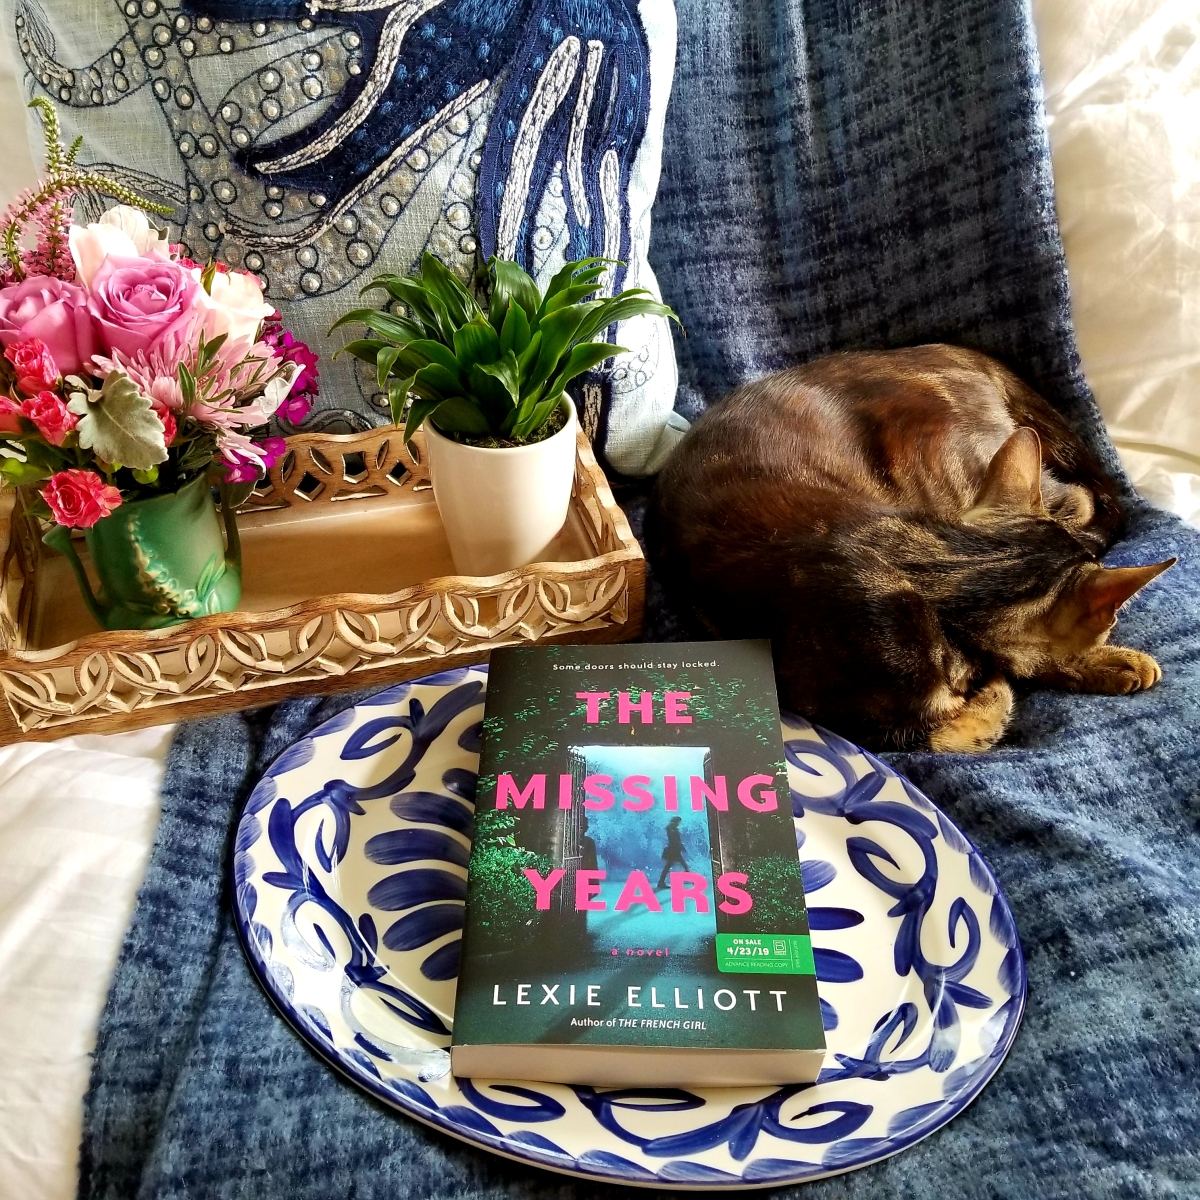 The Missing Years by Lexie Elliott #bookreview #tarheelreader #thrmissingyears @elliott_lexie @berkleypub #themissingyears #blogtour #bookgiveaway